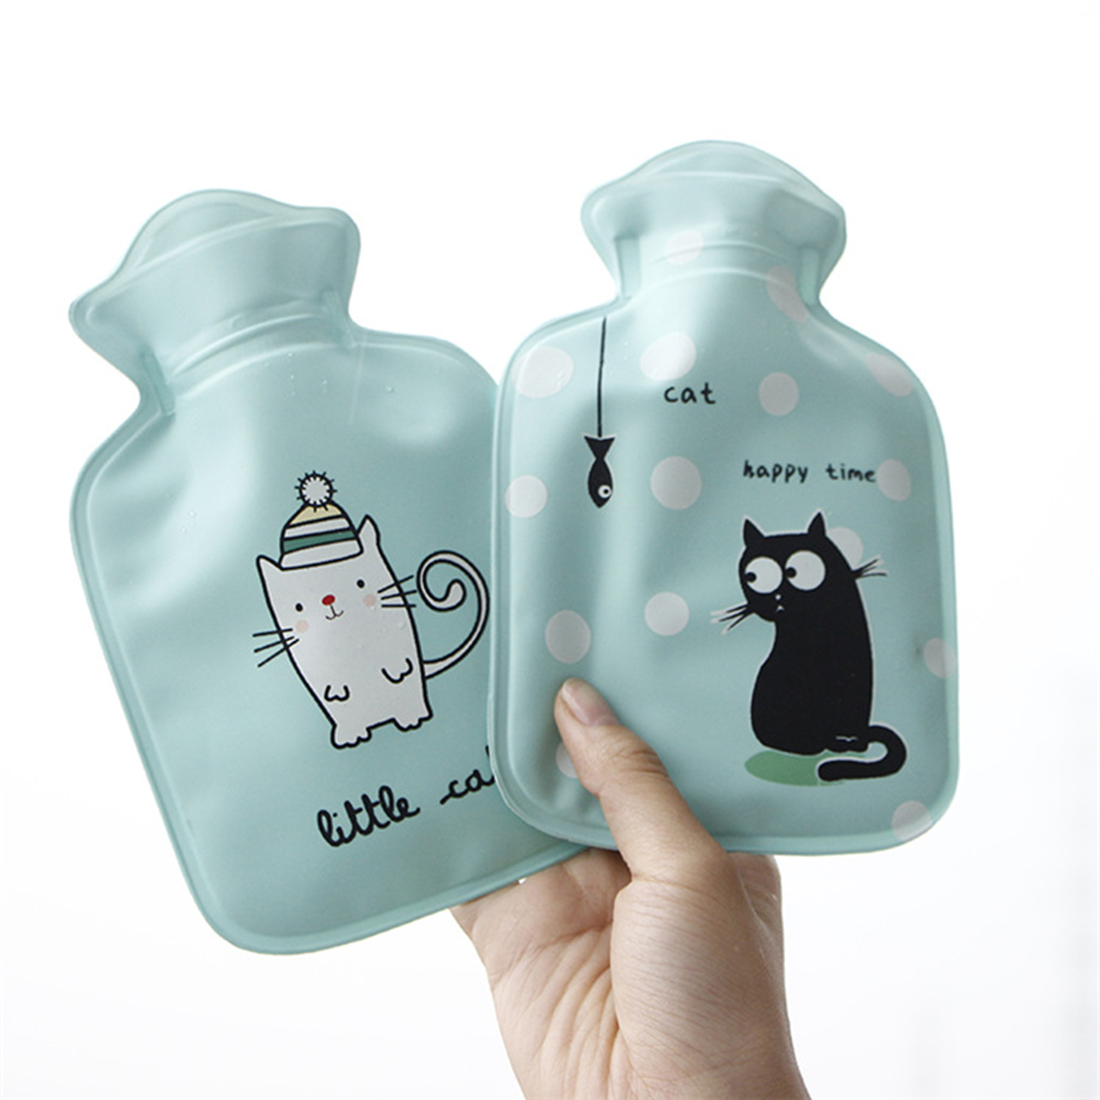 Hot Mini Animals cat Fruits Lemon juice Hot-water bottle Pocket reusable hot cold pack bouillotte eau chaude Random color 800ml fruit juice infusing infuser water bottle sport health lemon juice bottle flip lid